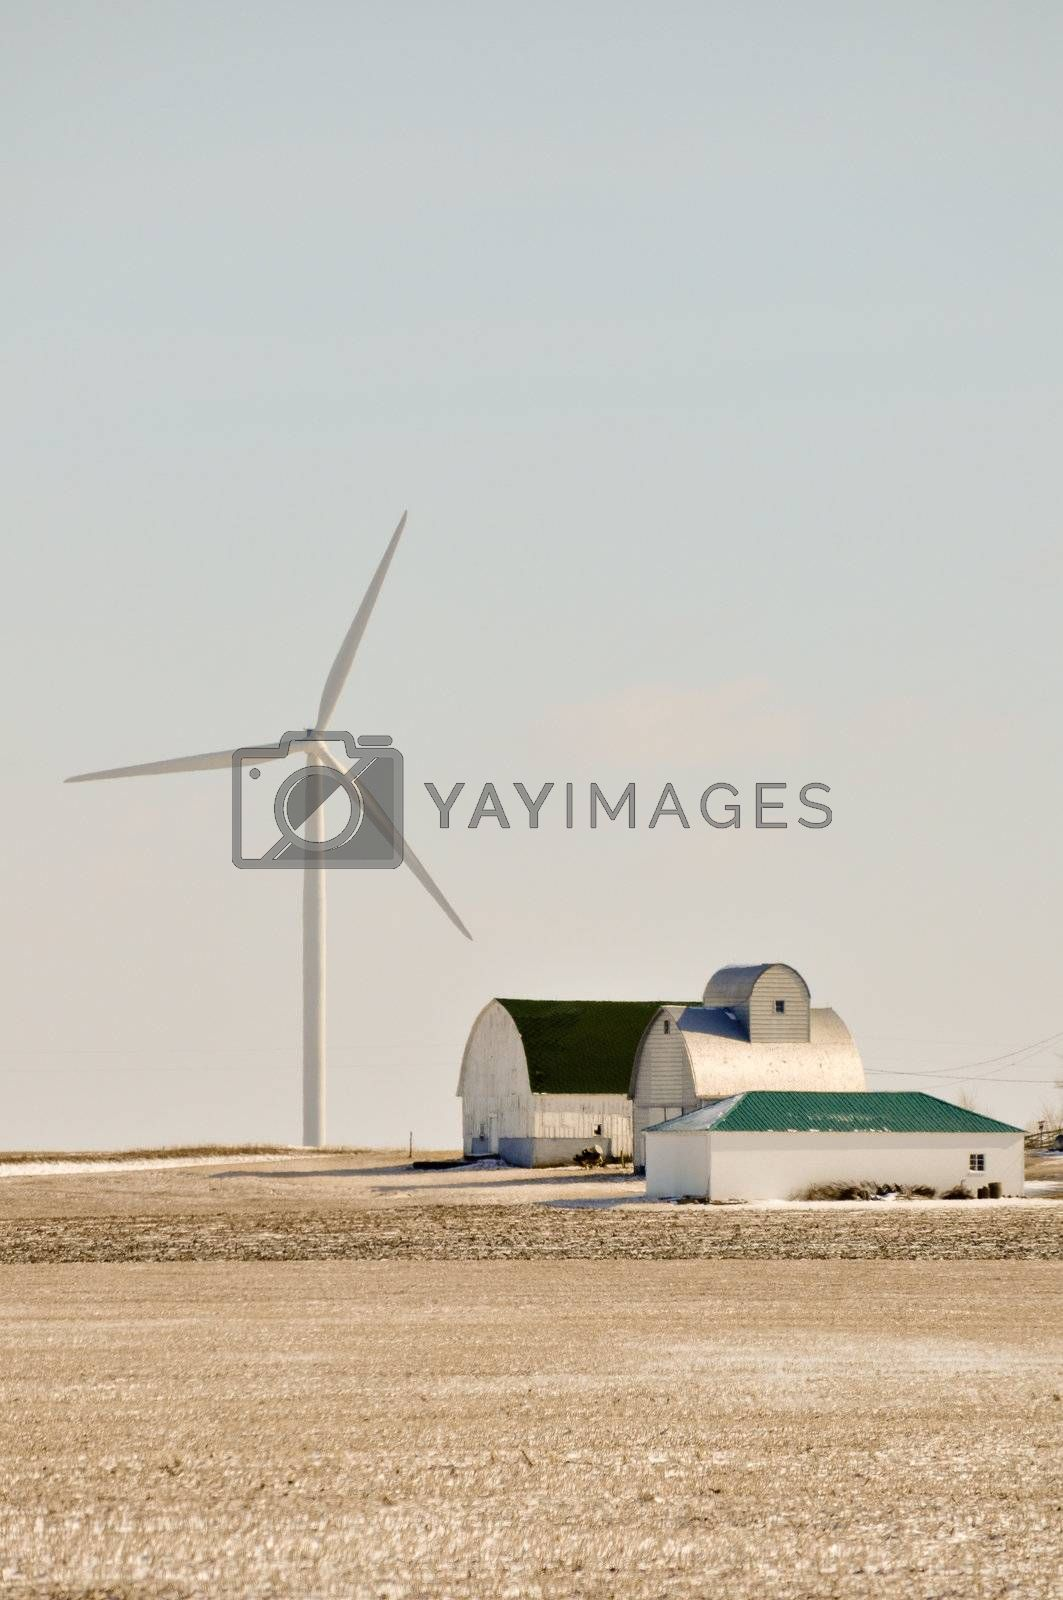 Indiana Wind Turbine Turns Over the Family farm by RefocusPhoto